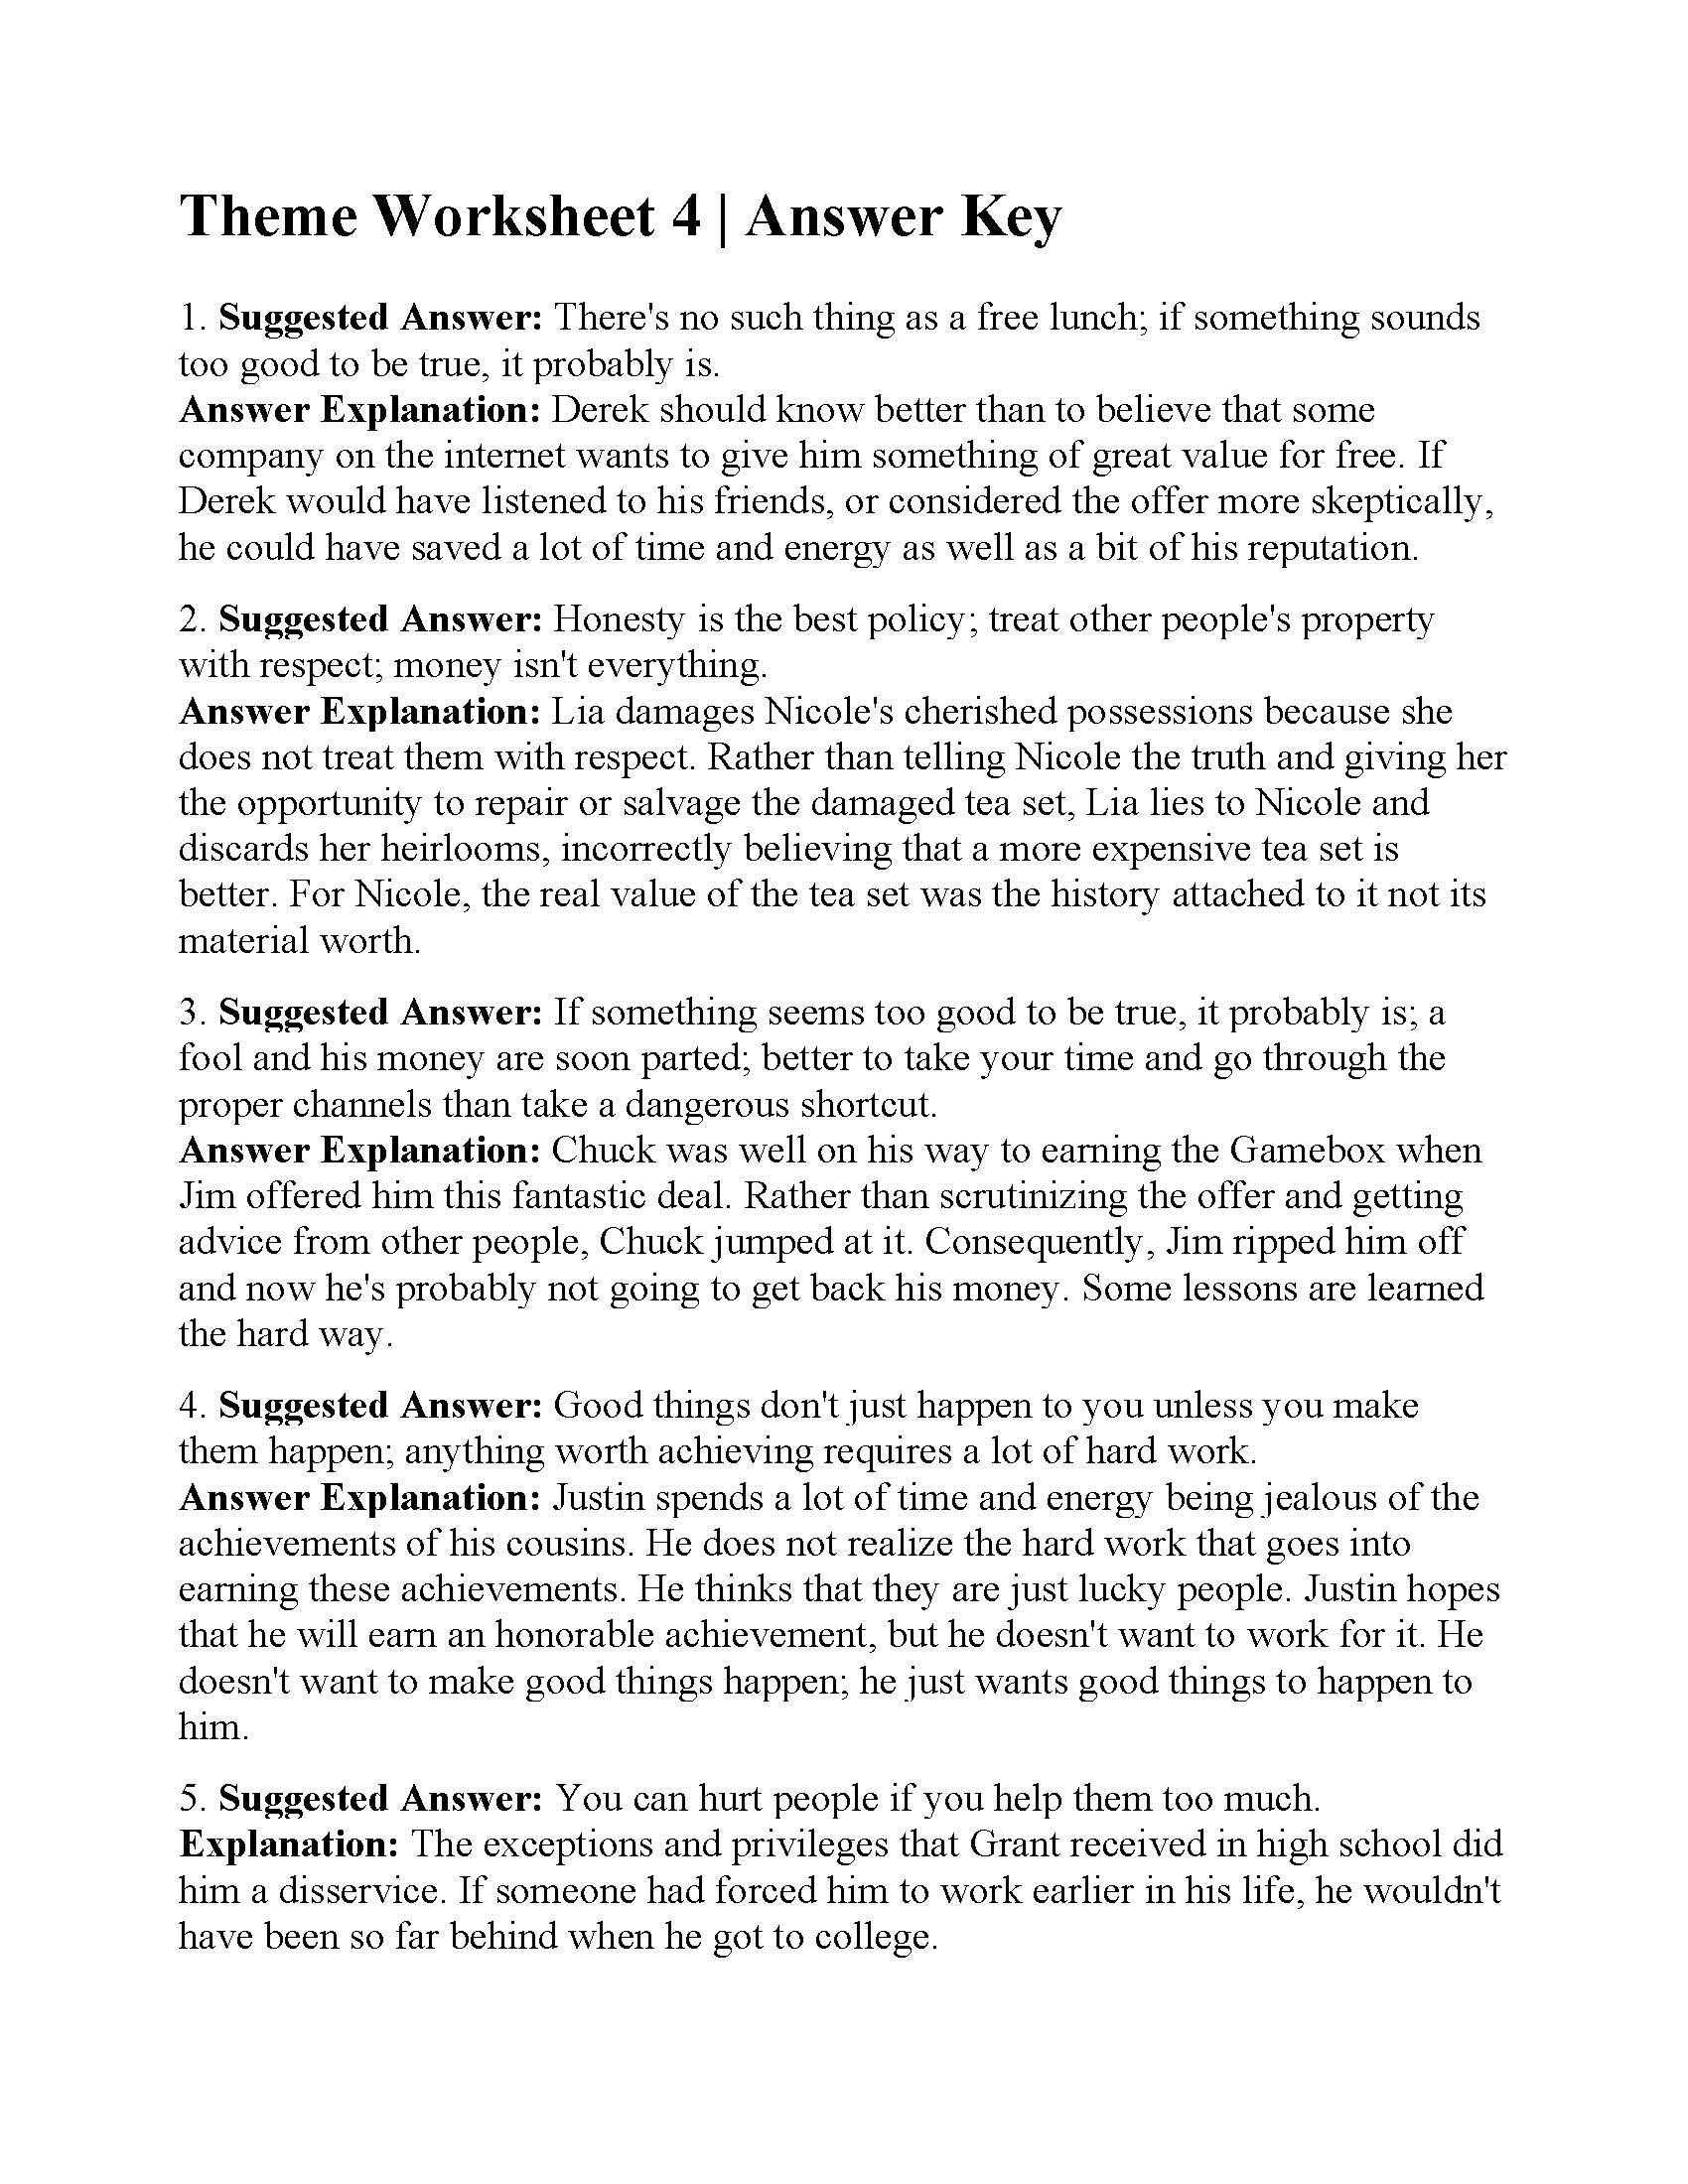 Theme Worksheets 5th Grade This is the Answer for theme Worksheet with